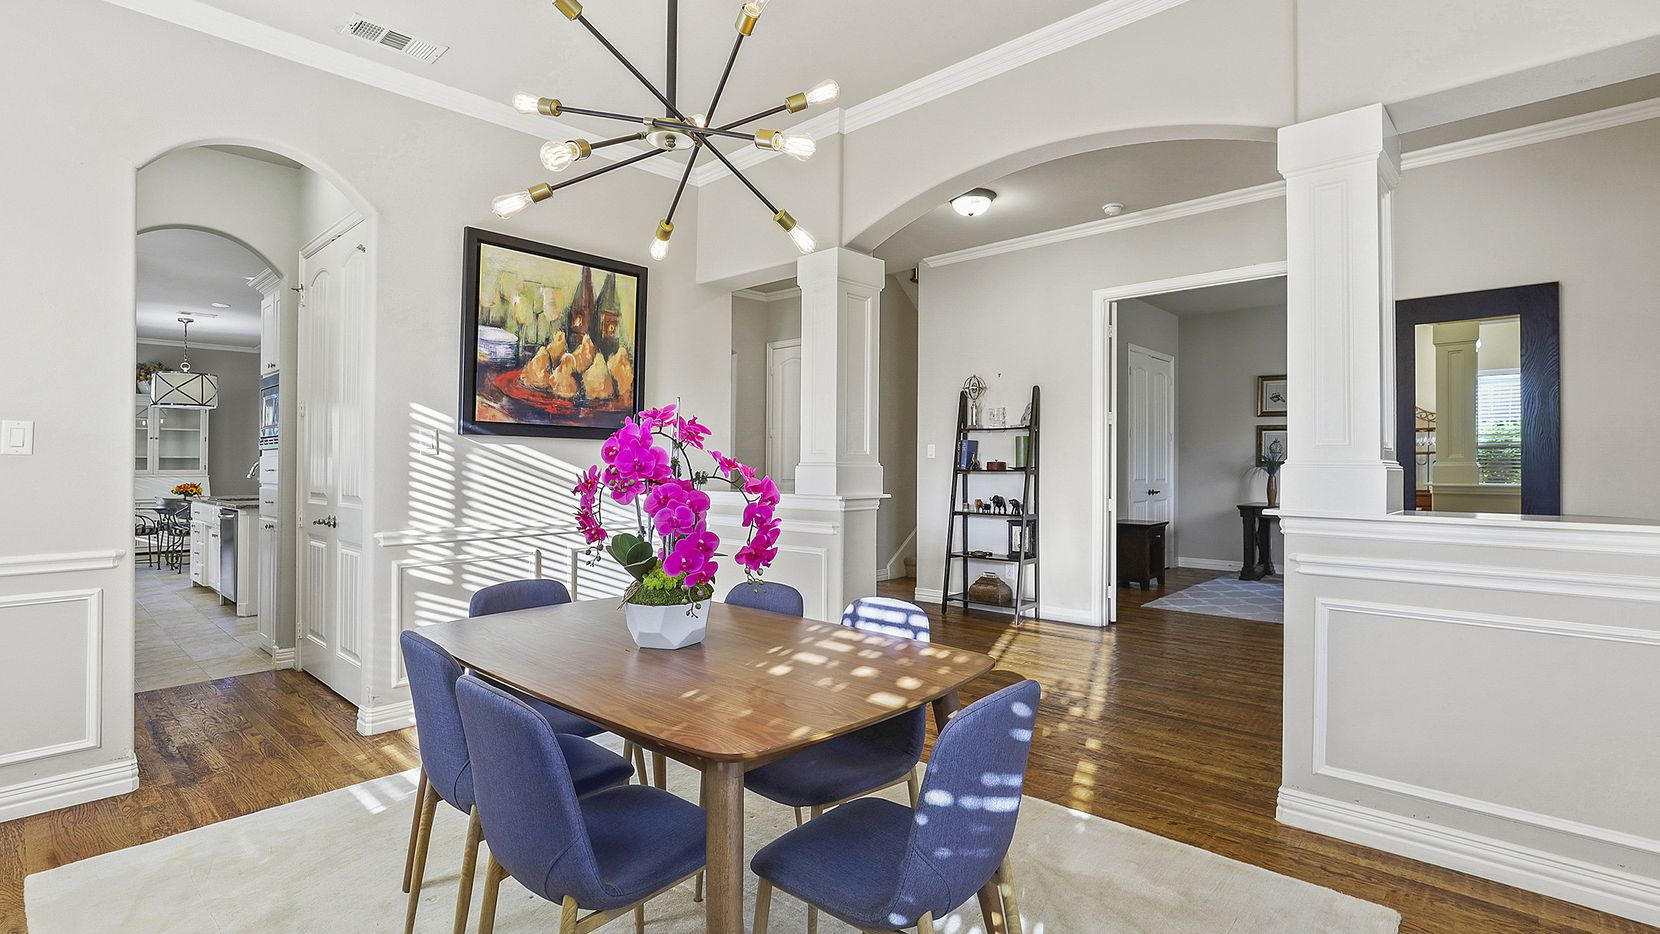 The three-bedroom home at 5303 Bonita Ave. has an open floor plan with wood flooring.